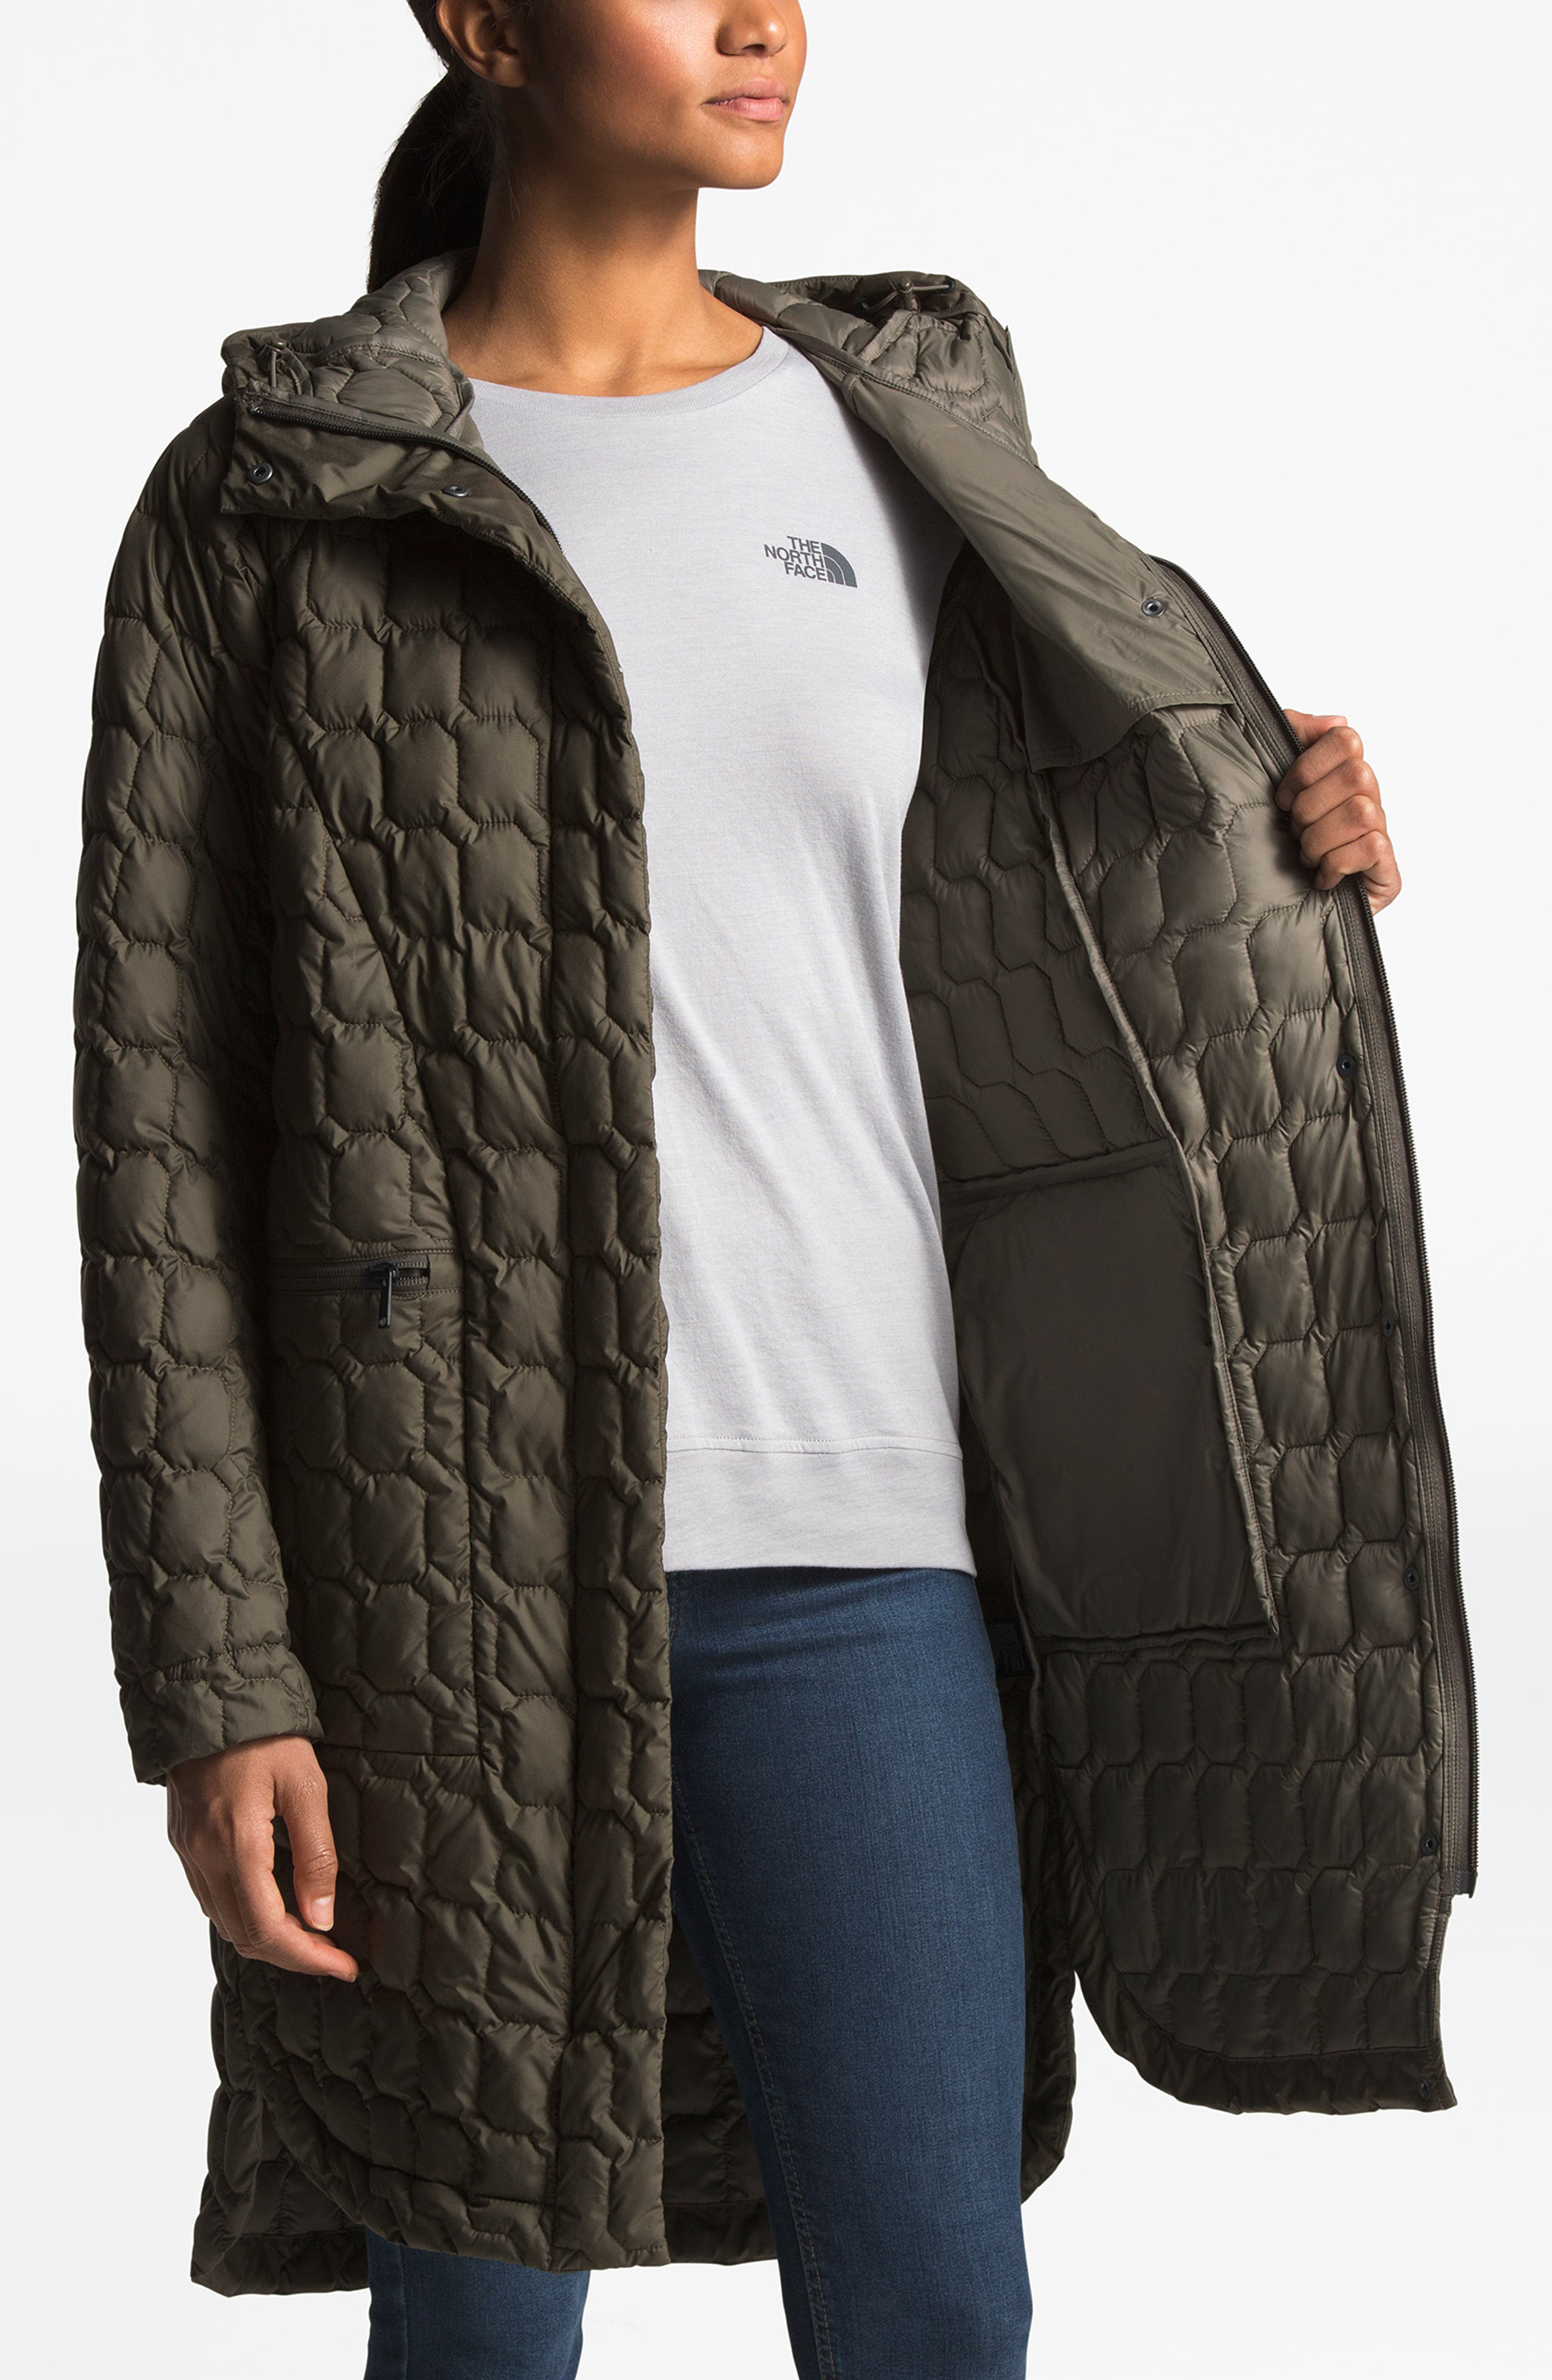 THE NORTH FACE, Thermoball<sup>™</sup> Water Resistant Duster Jacket, Alternate thumbnail 11, color, 301